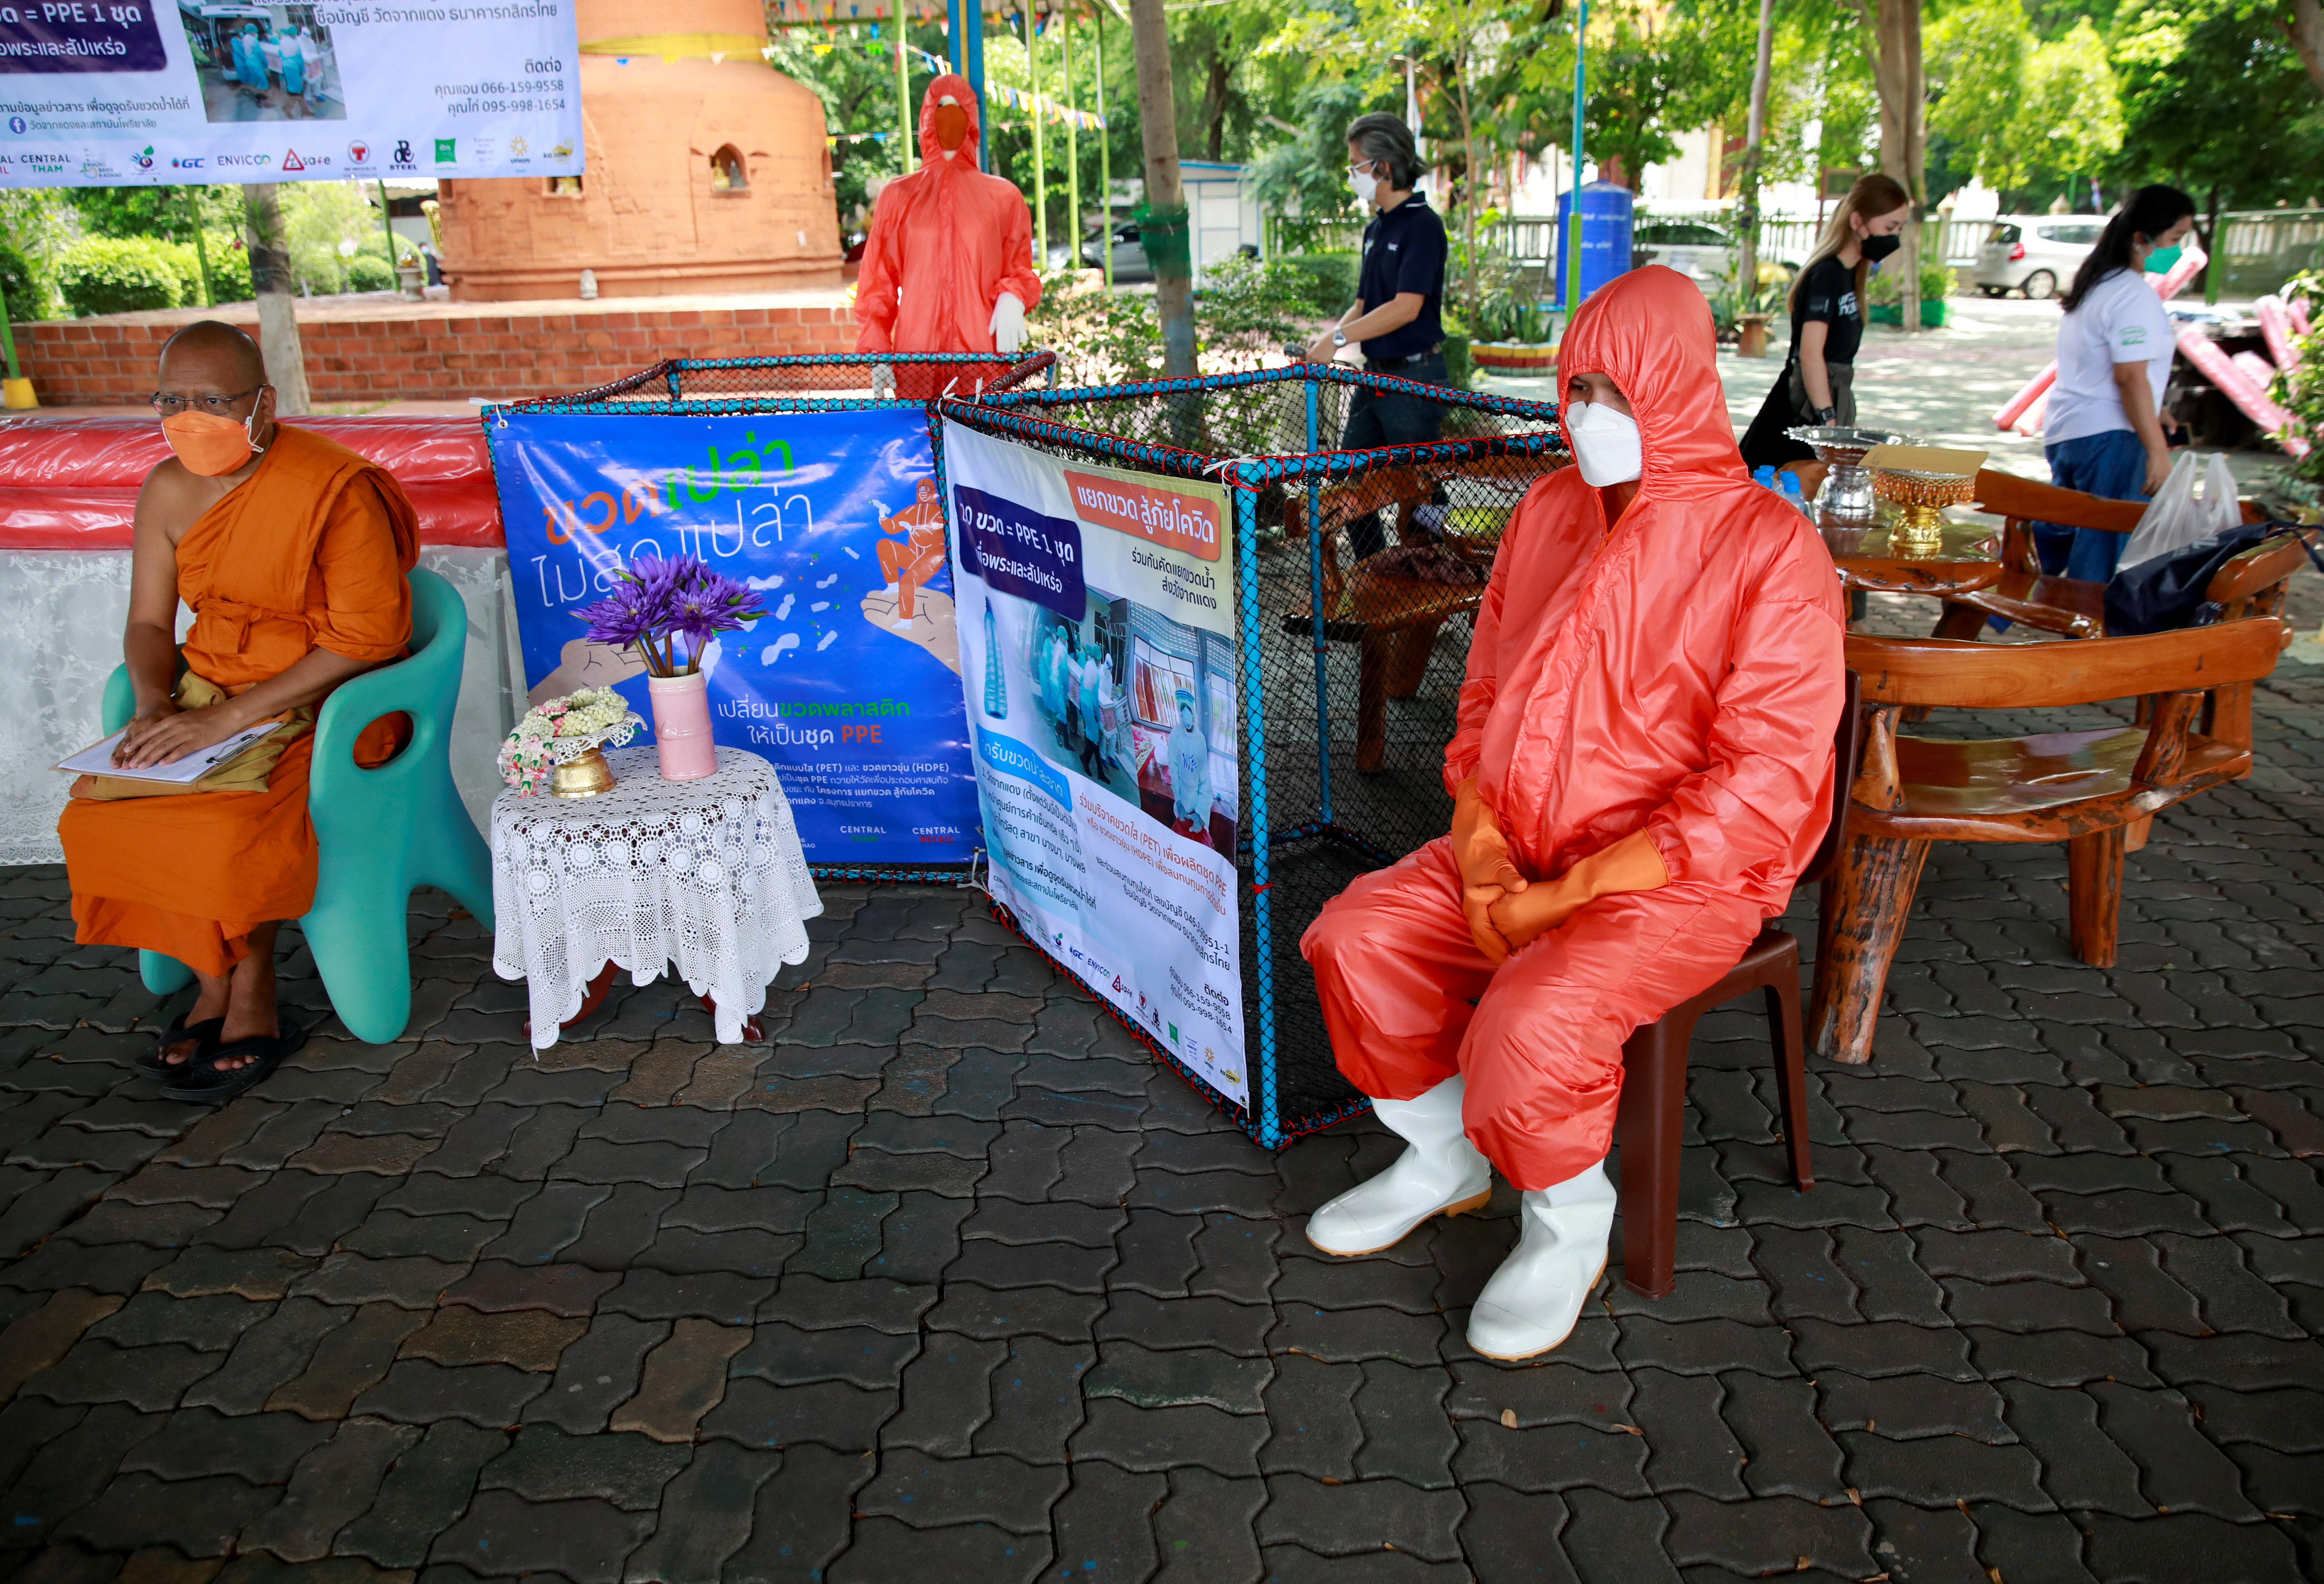 A Buddhist monk wears a PPE suit, as Bangkok city's administration and temples drive efforts to encourage the public to donate plastic bottles, which will be collected and upcycled into reusable Personal Protective Equipment (PPE) to reduce plastic waste as Thailand battles coronavirus disease (COVID-19) pandemic, in Bangkok, Thailand August 30, 2021. Picture taken August 30, 2021. REUTERS/Soe Zeya Tun